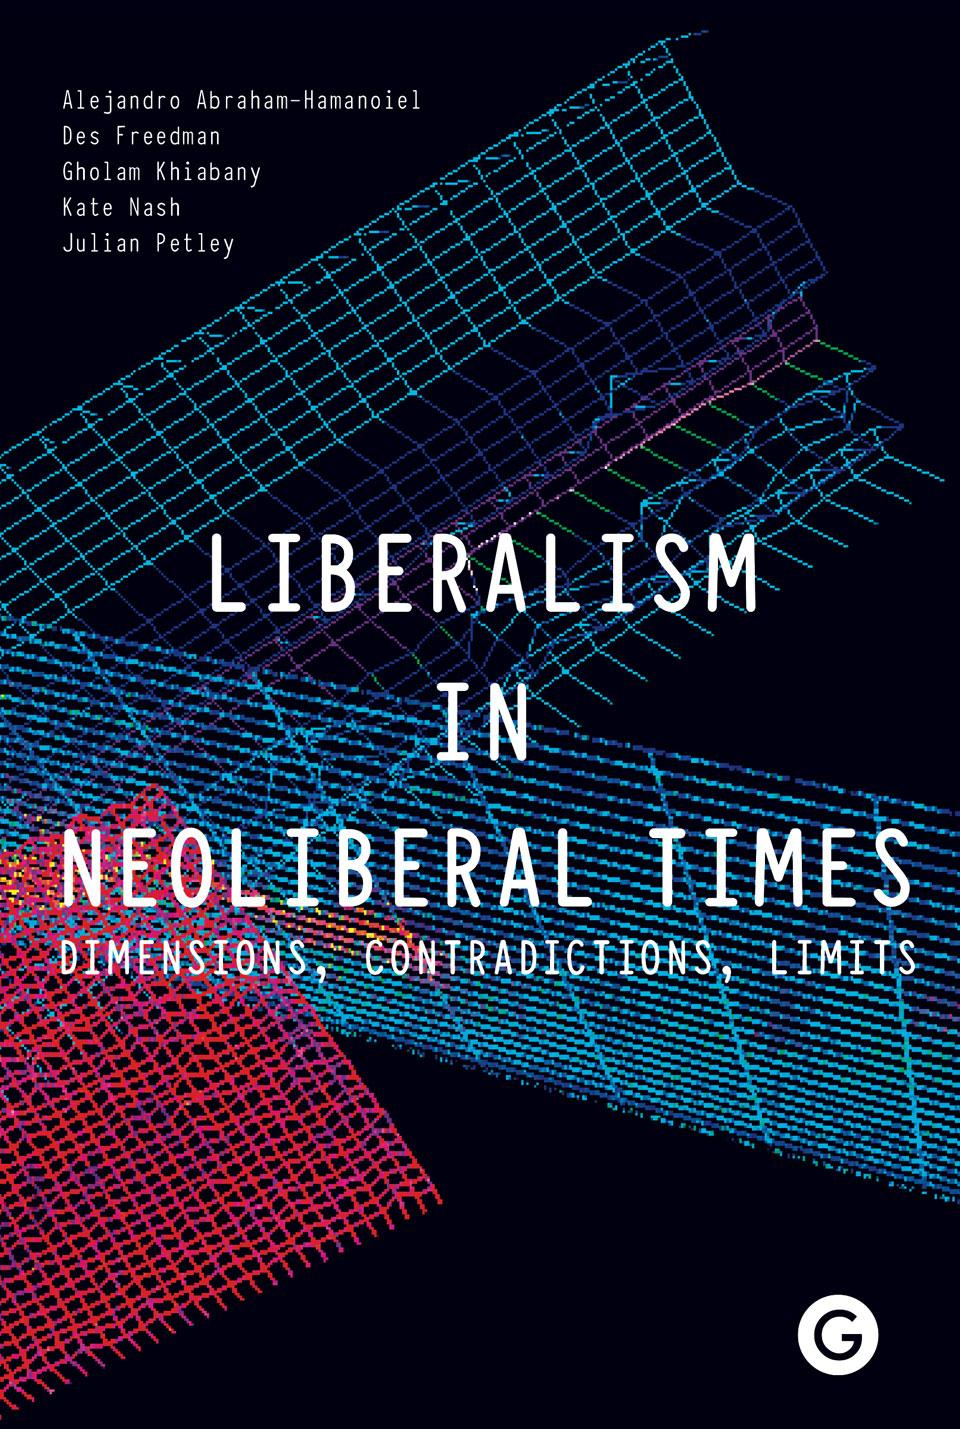 Cover of Liberalism in Neoliberal Times